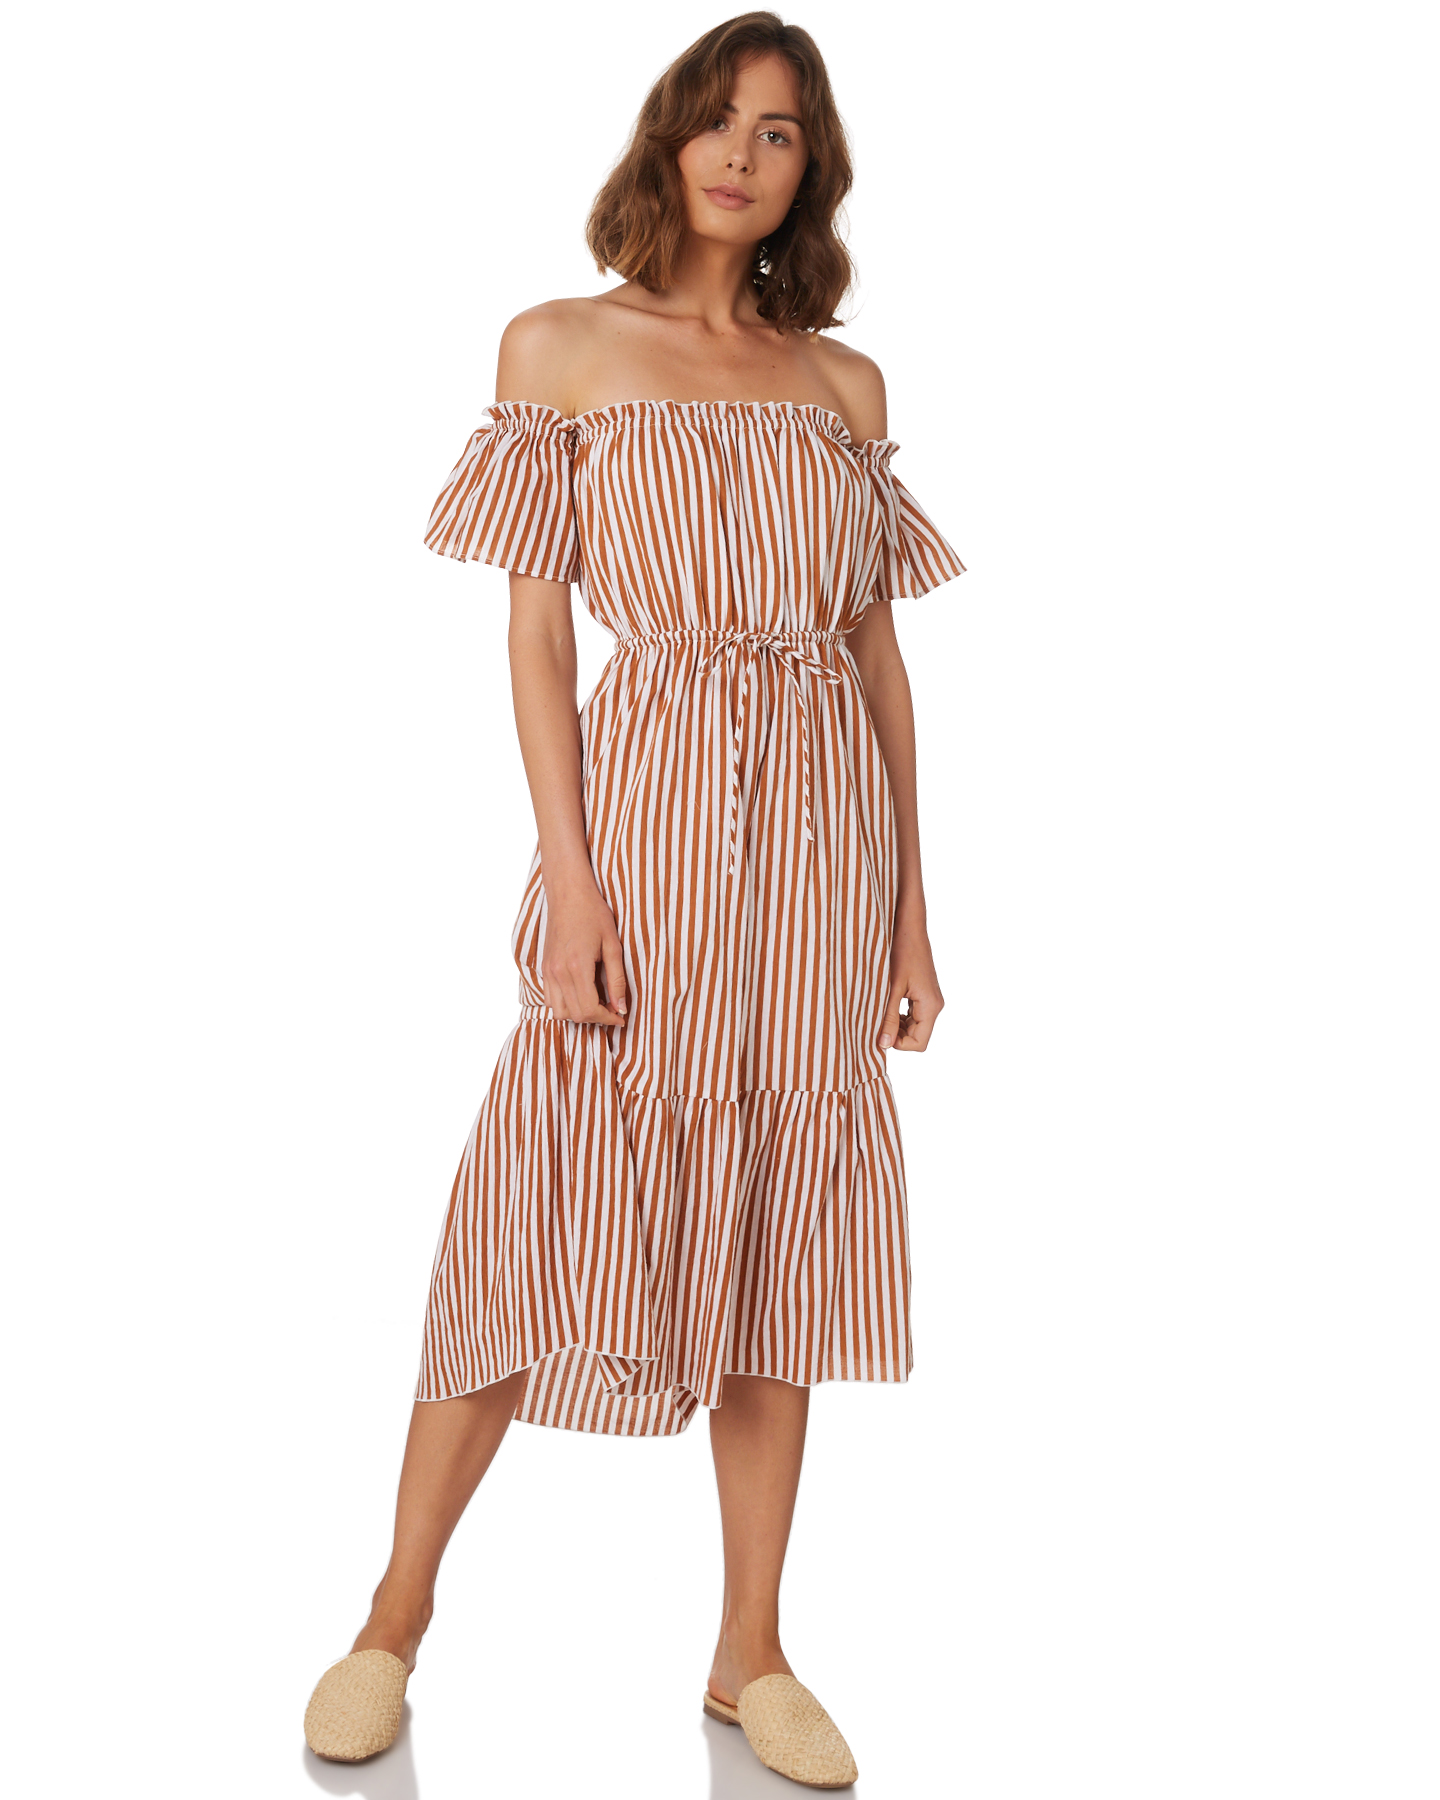 00ad54b1b1a7 GOLD STRIPE WOMENS CLOTHING RUE STIIC DRESSES - WS18-22-GP-CBGSTR ...